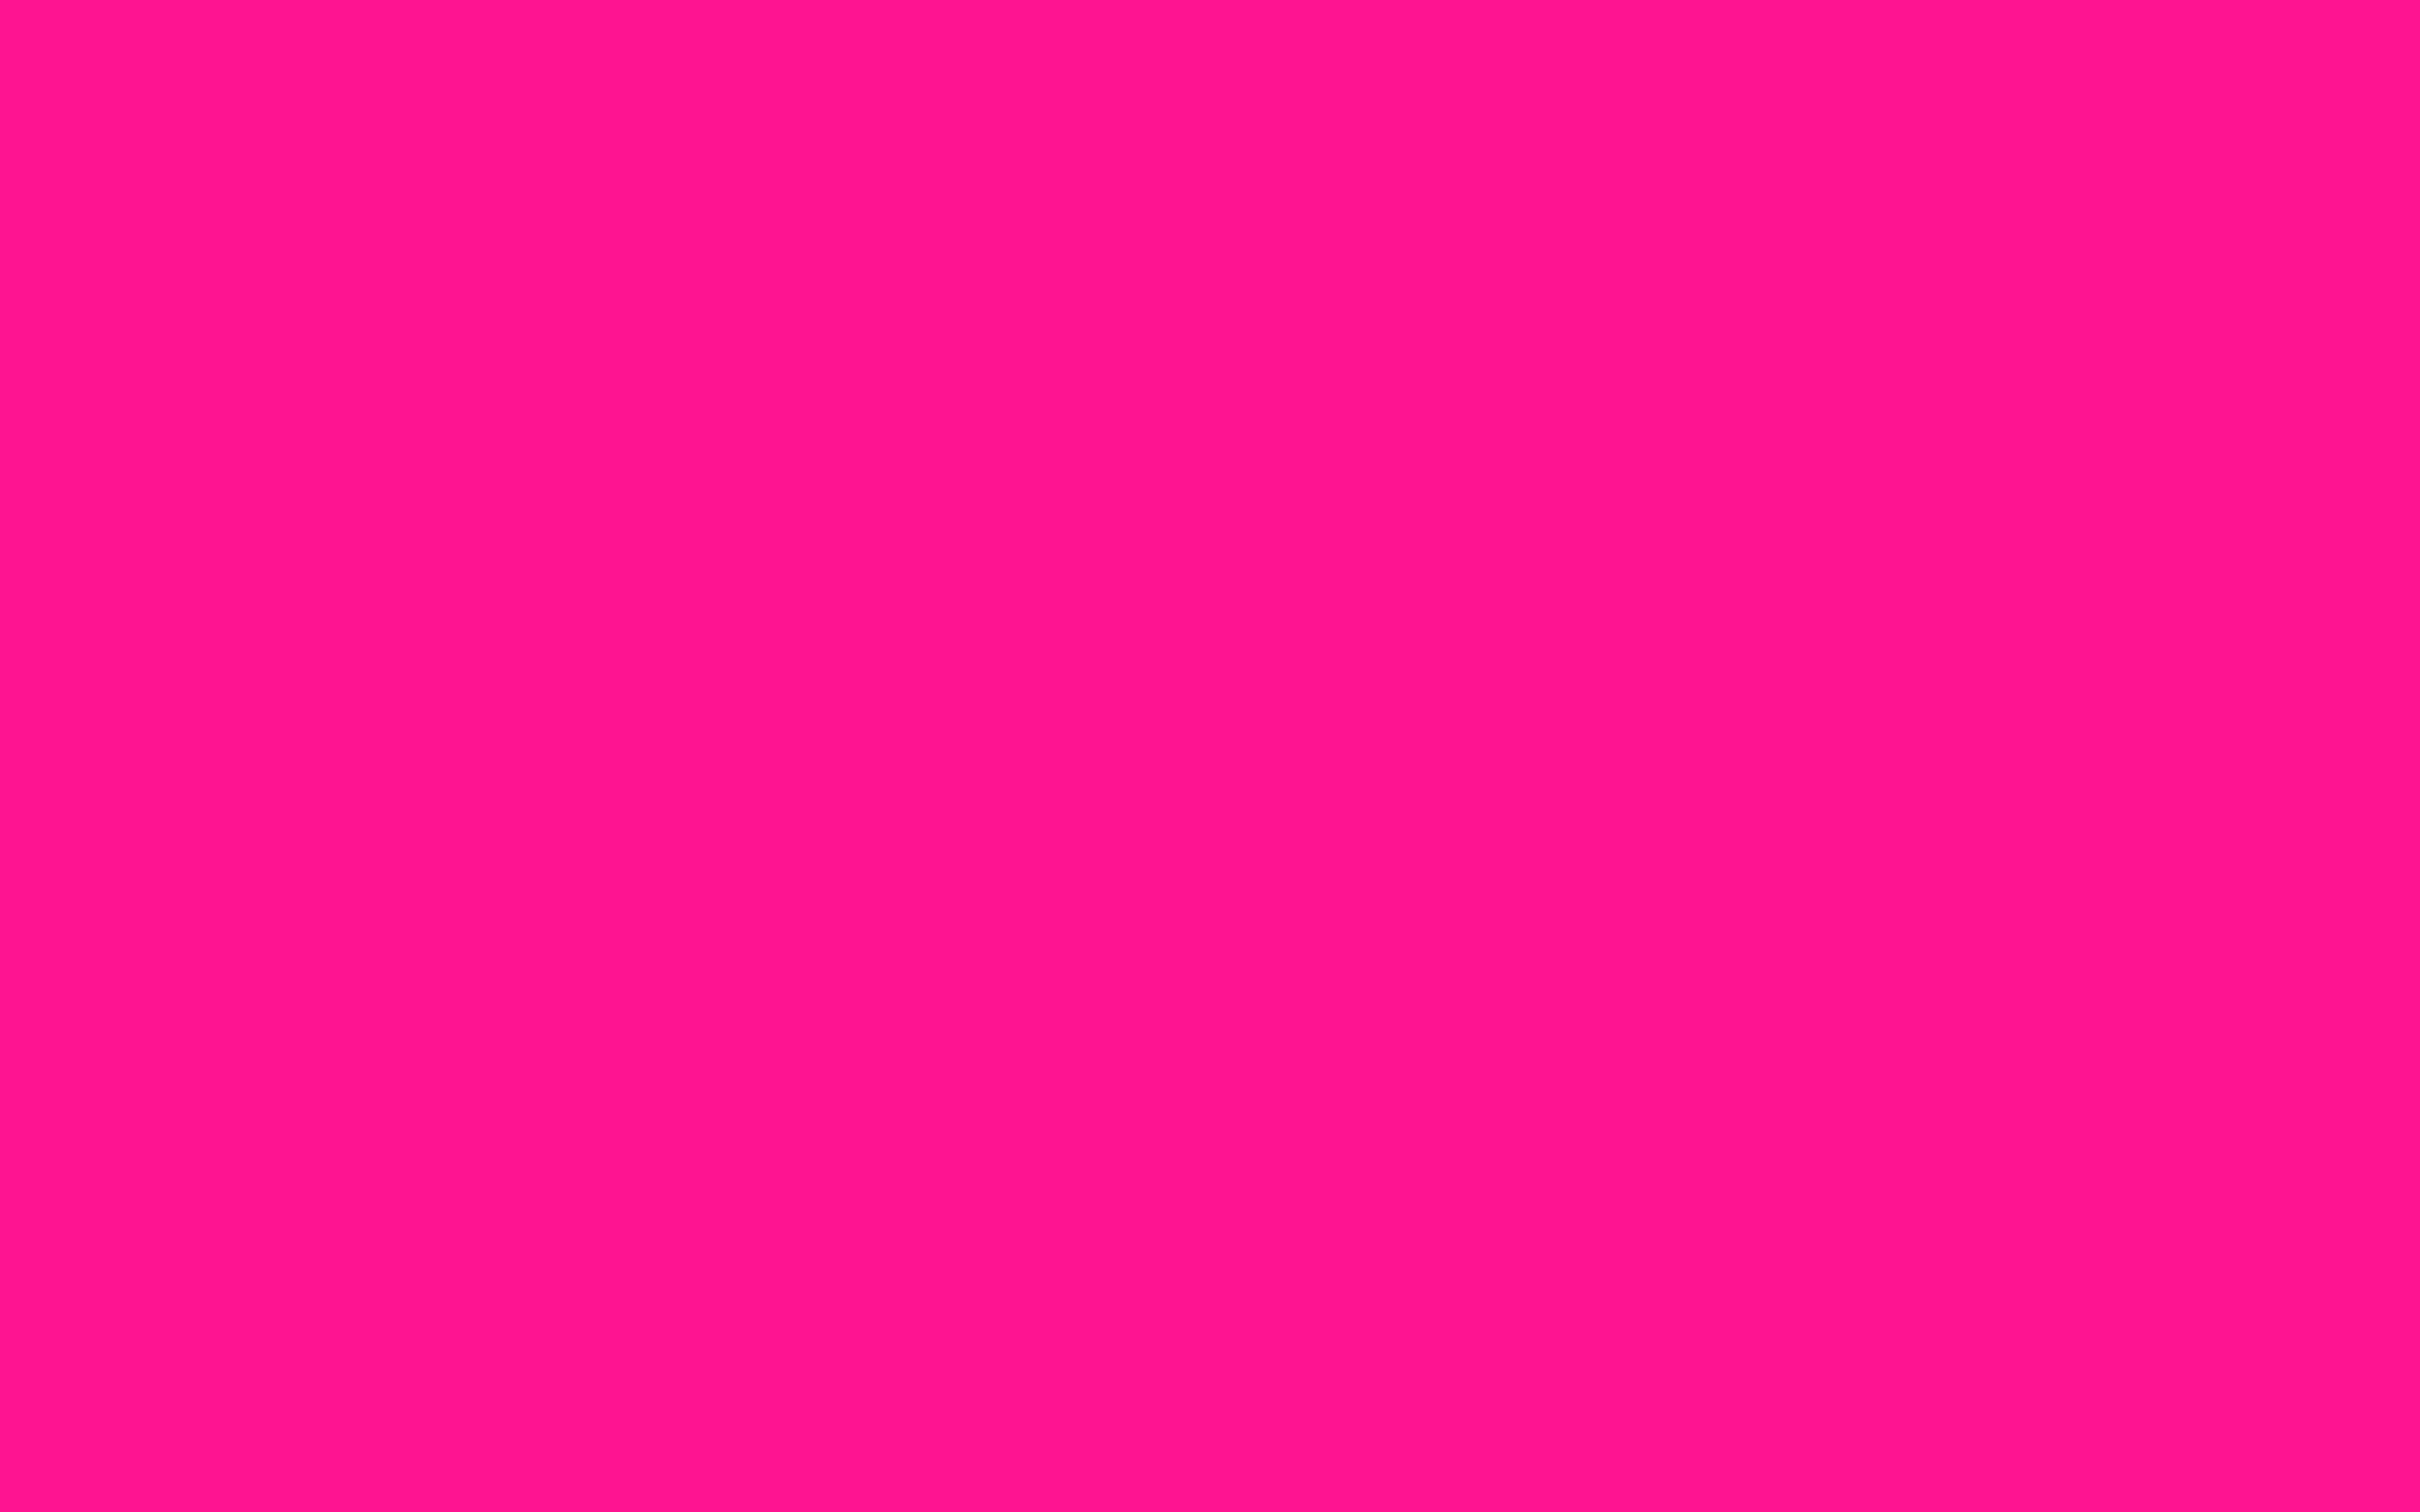 neon pink wallpaper widescreen hd pics for pc | wallvie